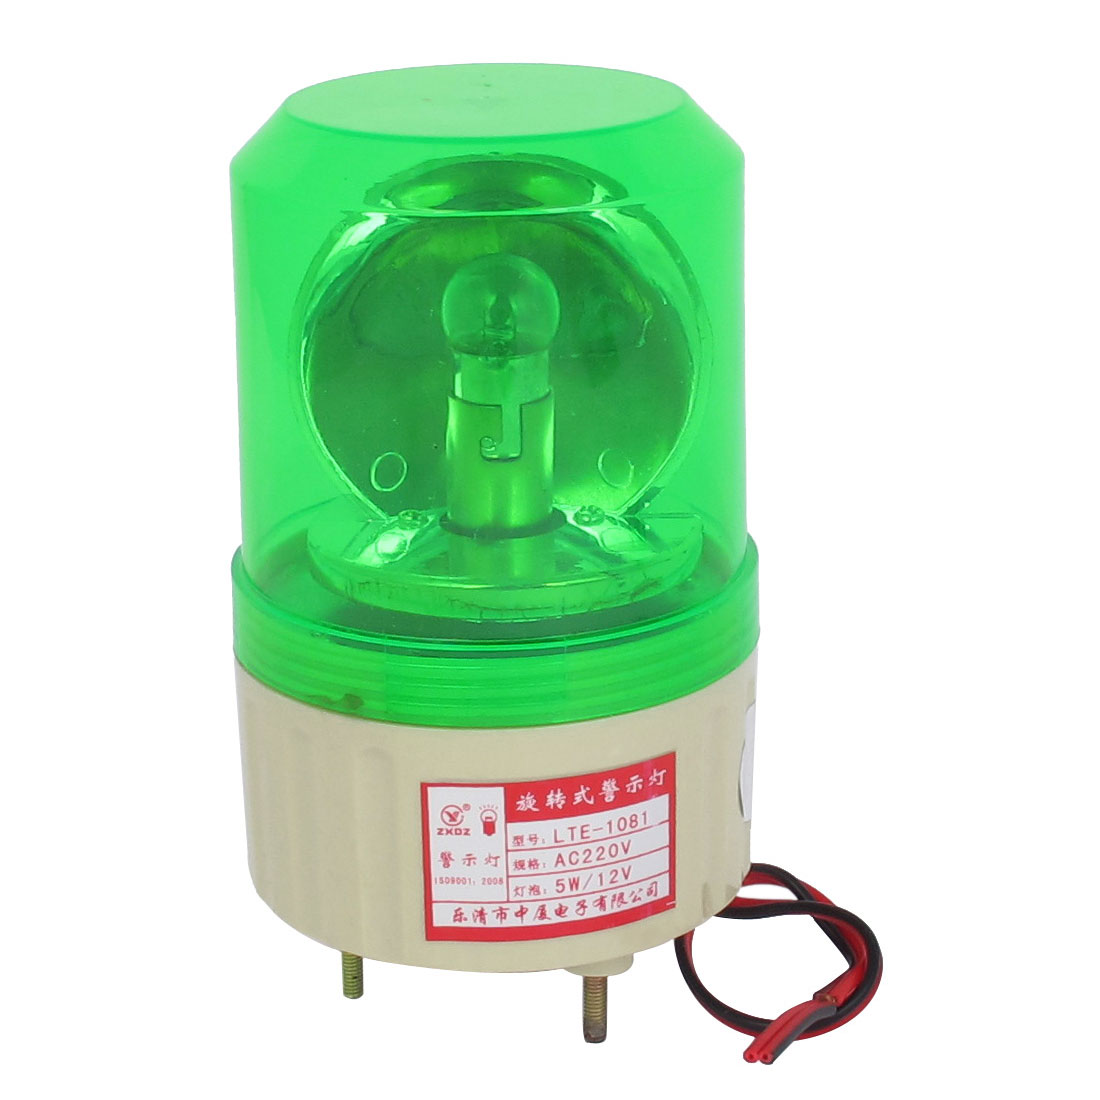 AC 220V Industrial Alarm System Rotating Warning Light Lamp Green